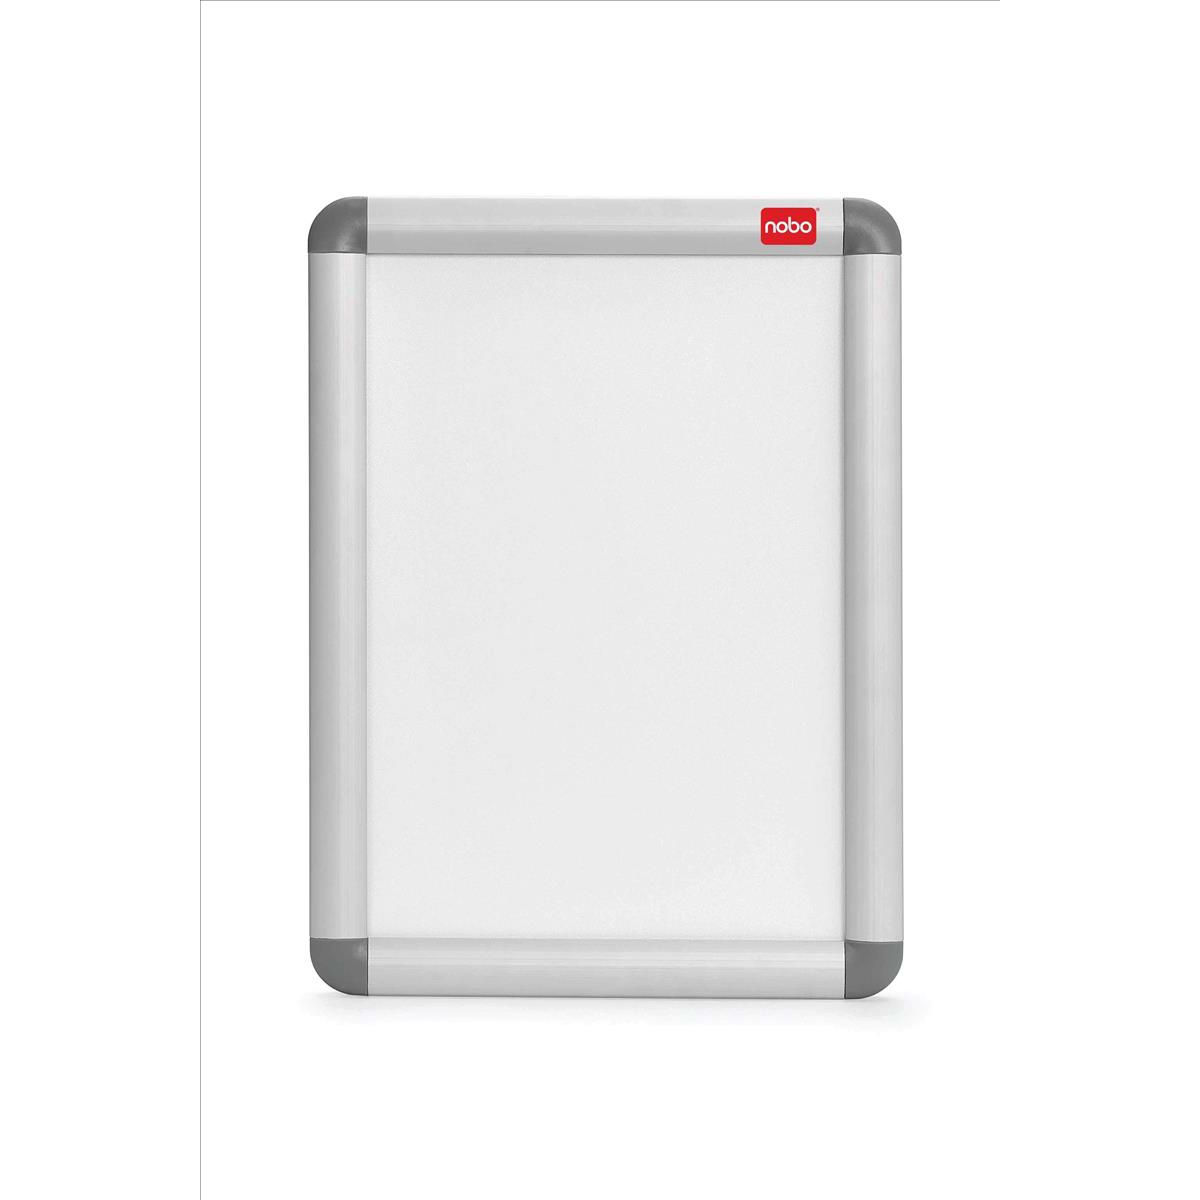 Nobo Snap Frame Moulded Aluminium with PVC Front-loading Inc Fixings A4 297x210mm Ref 1902214